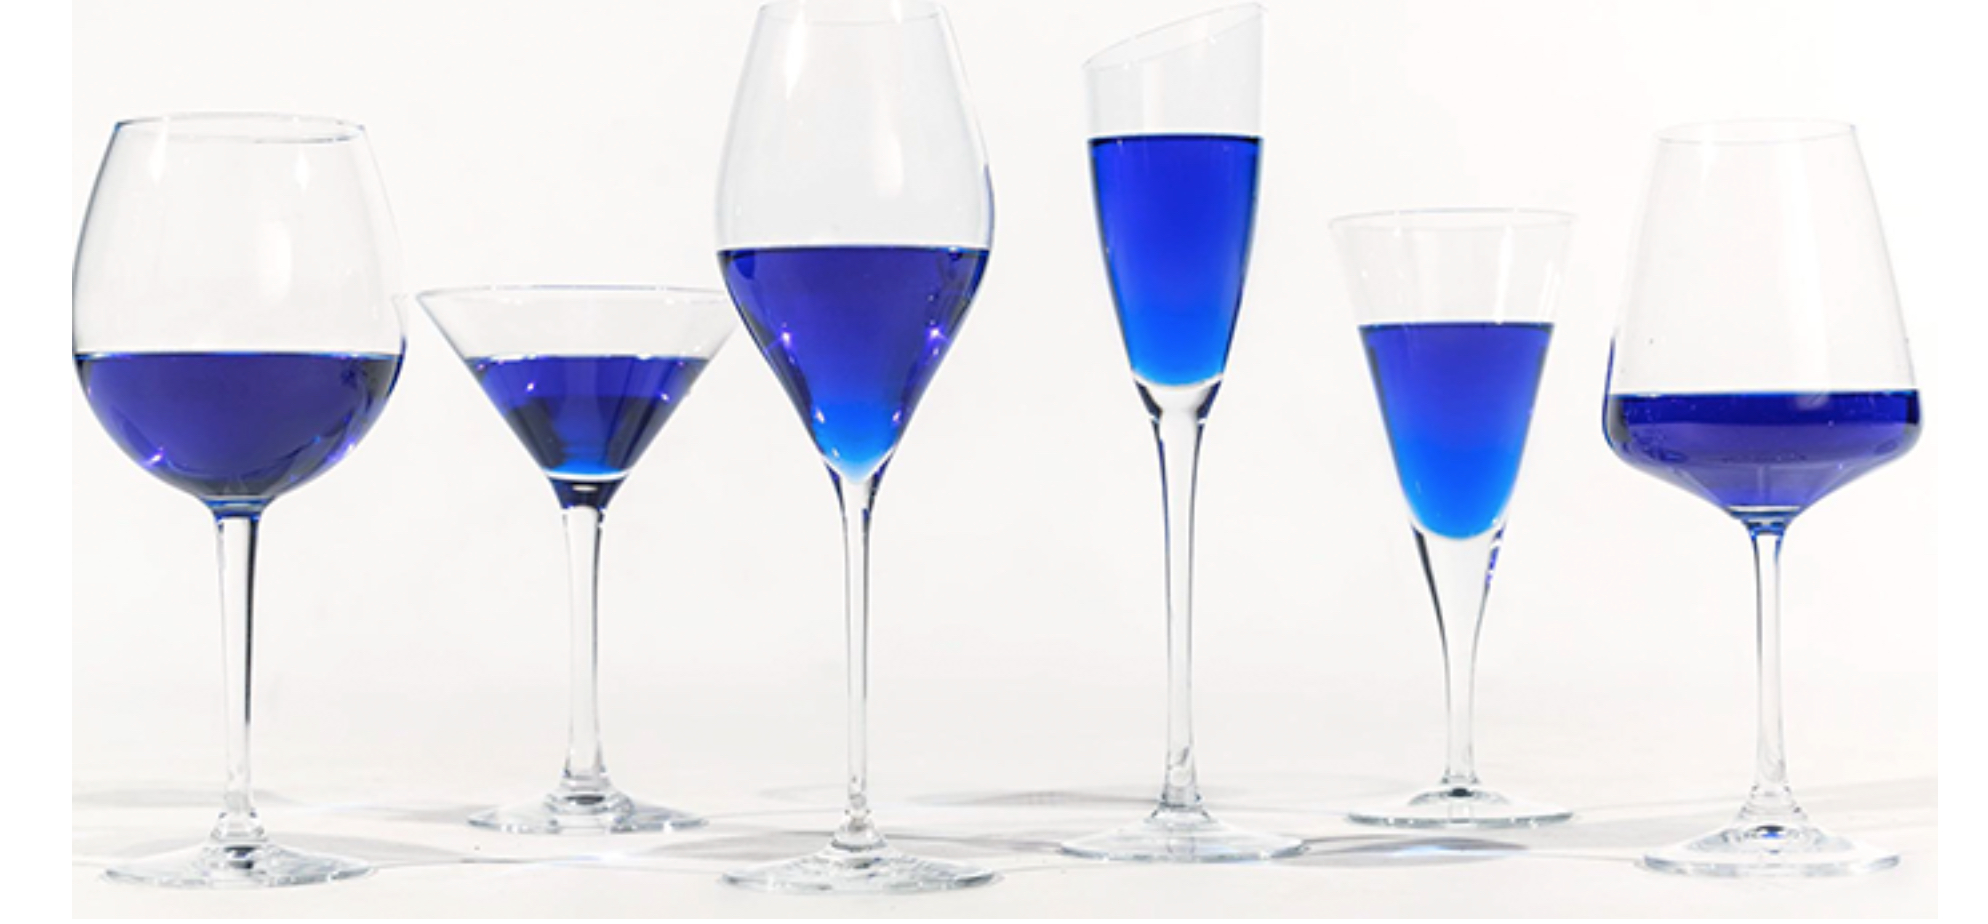 Blue prosecco and wine